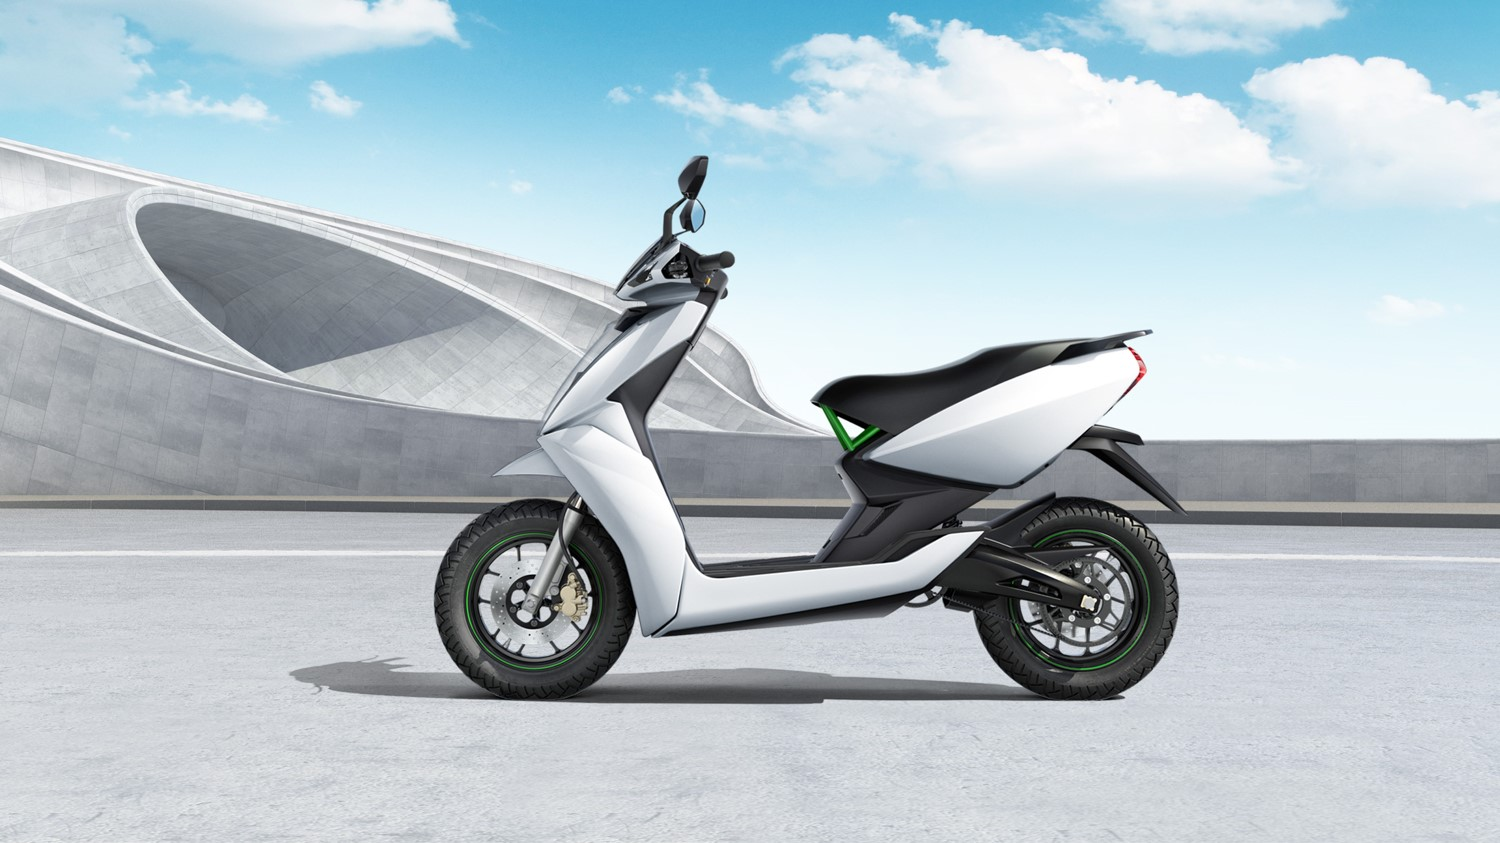 FIRST LOOK IN INDIA, ATHER ENERGY UNVEILS THE S340 - INDIA'S FIRST